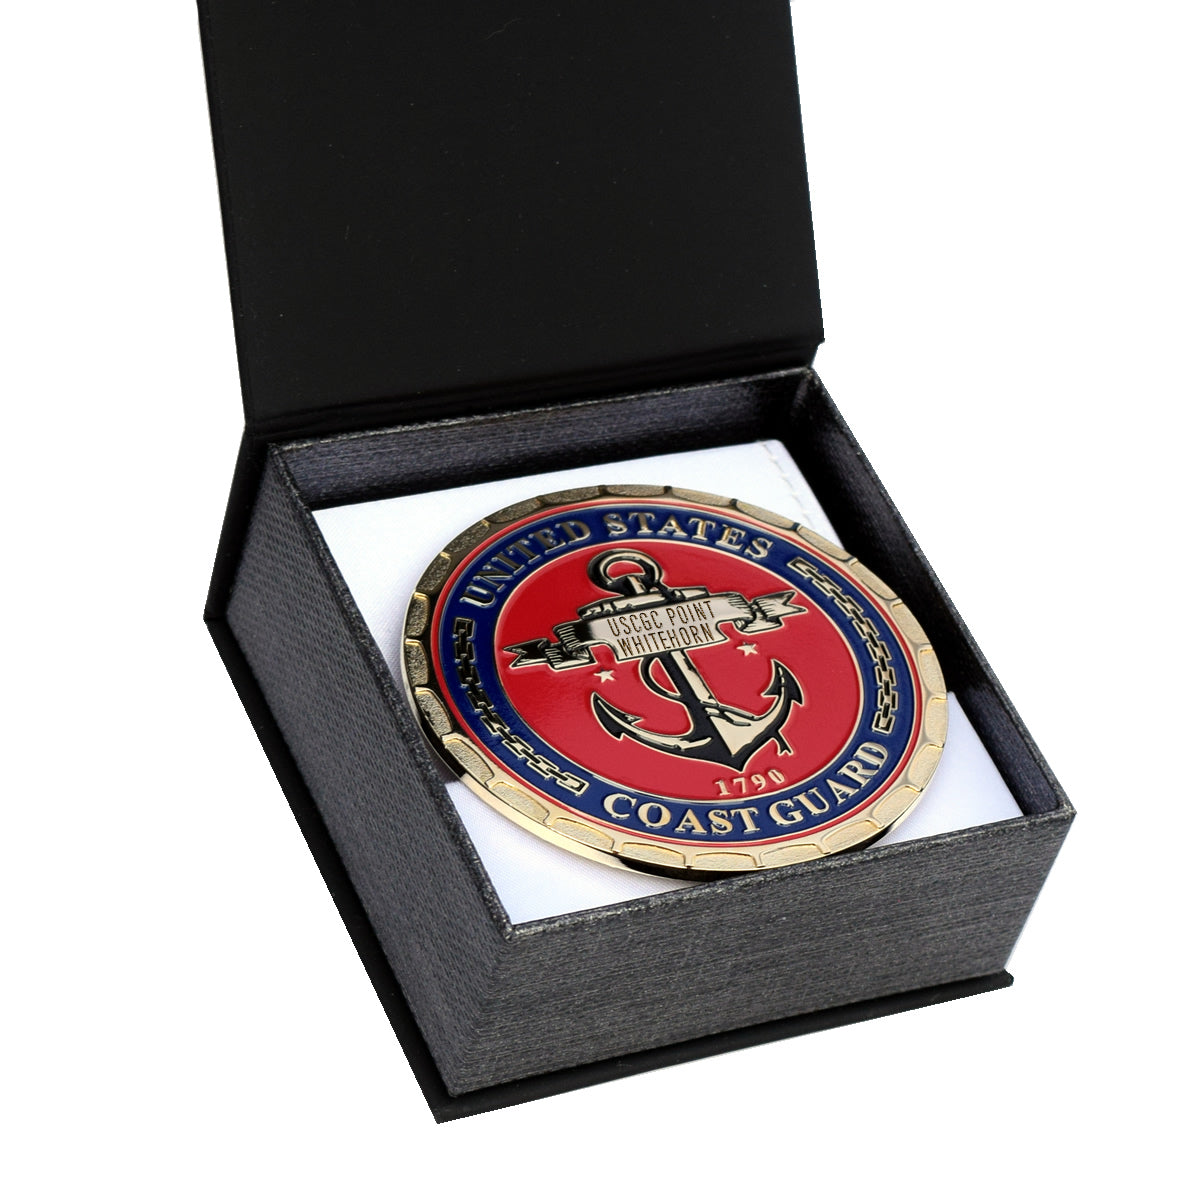 USCGC POINT WHITEHORN WPB-82364 COAST GUARD PLAQUE